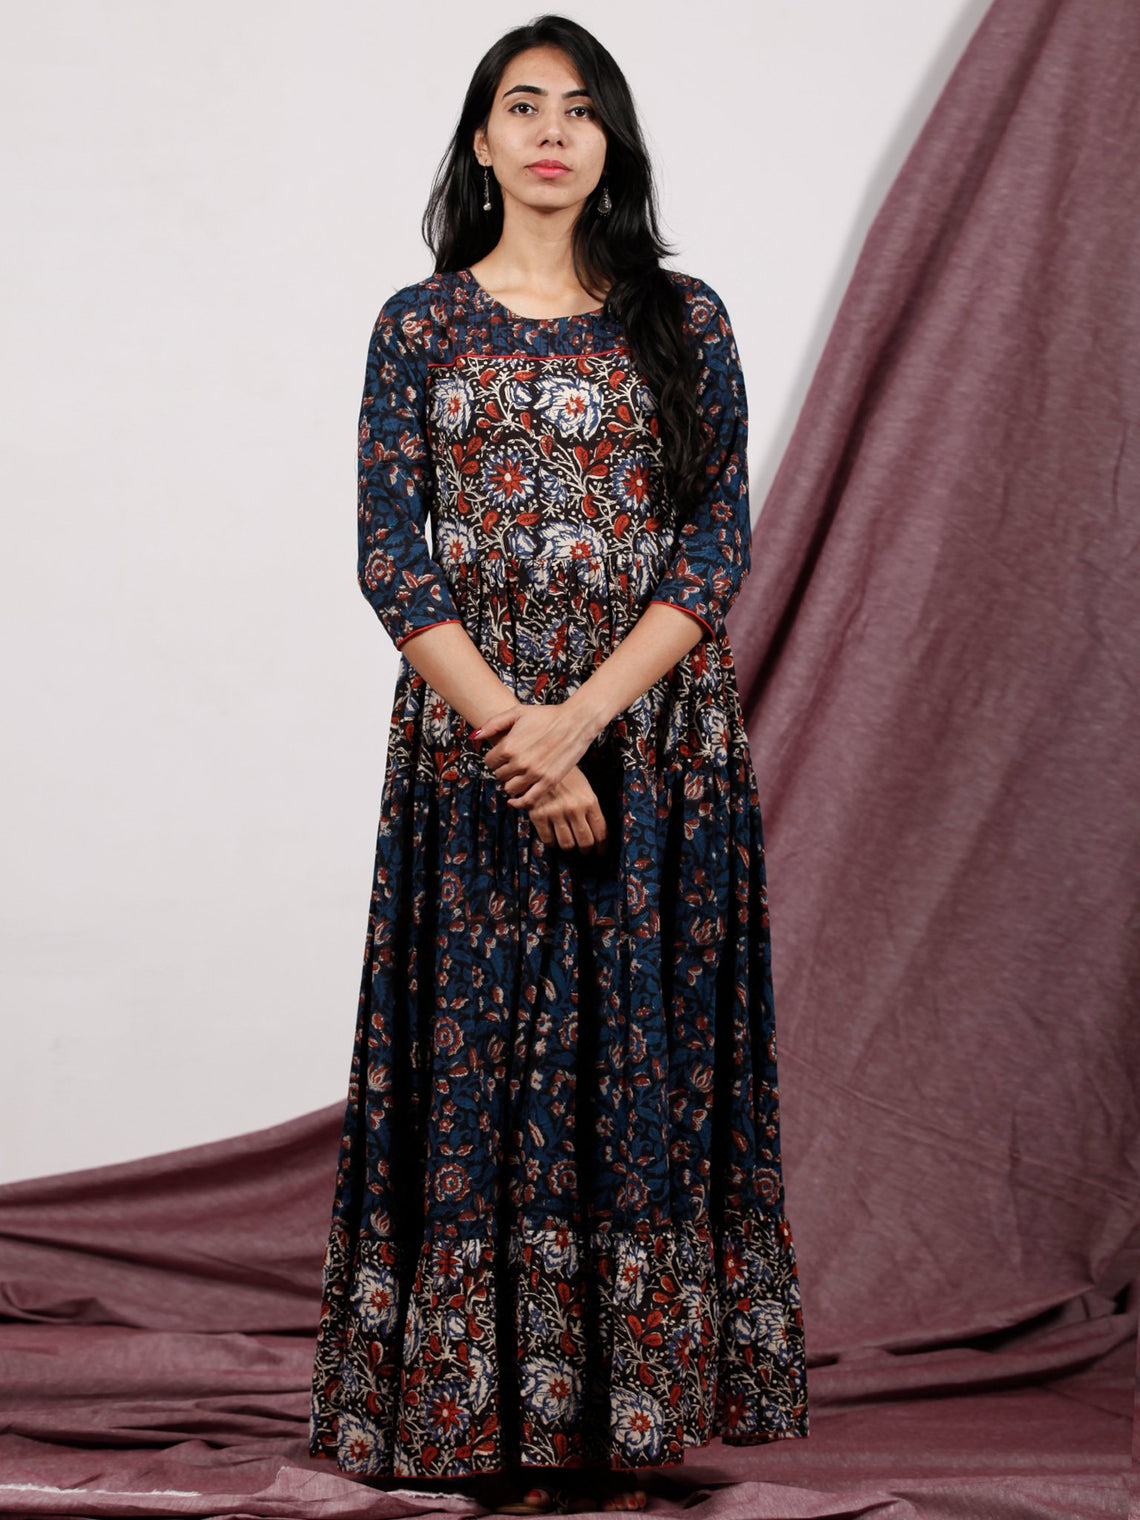 Indigo Black Rust Ivory Hand Block Printed Long Cotton Tier Dress With Pin Tuck Neck - D221F1320